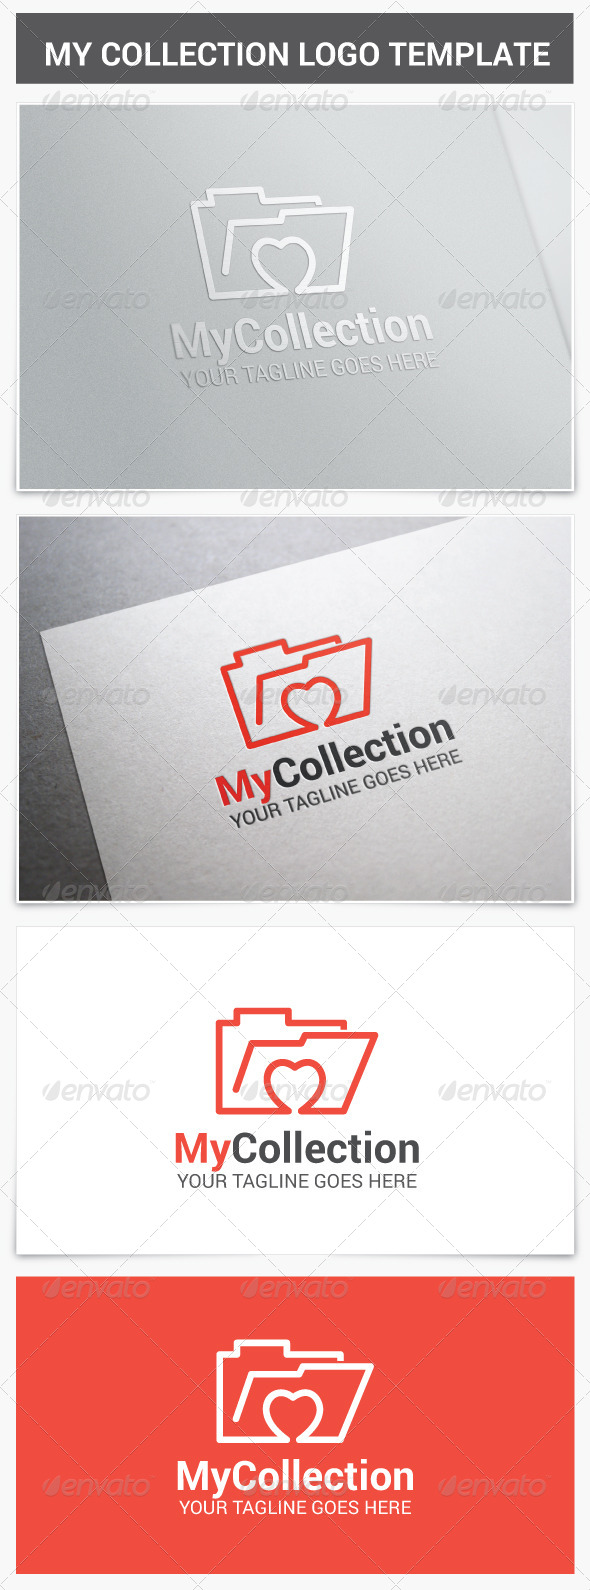 My Collection Logo - Vector Abstract